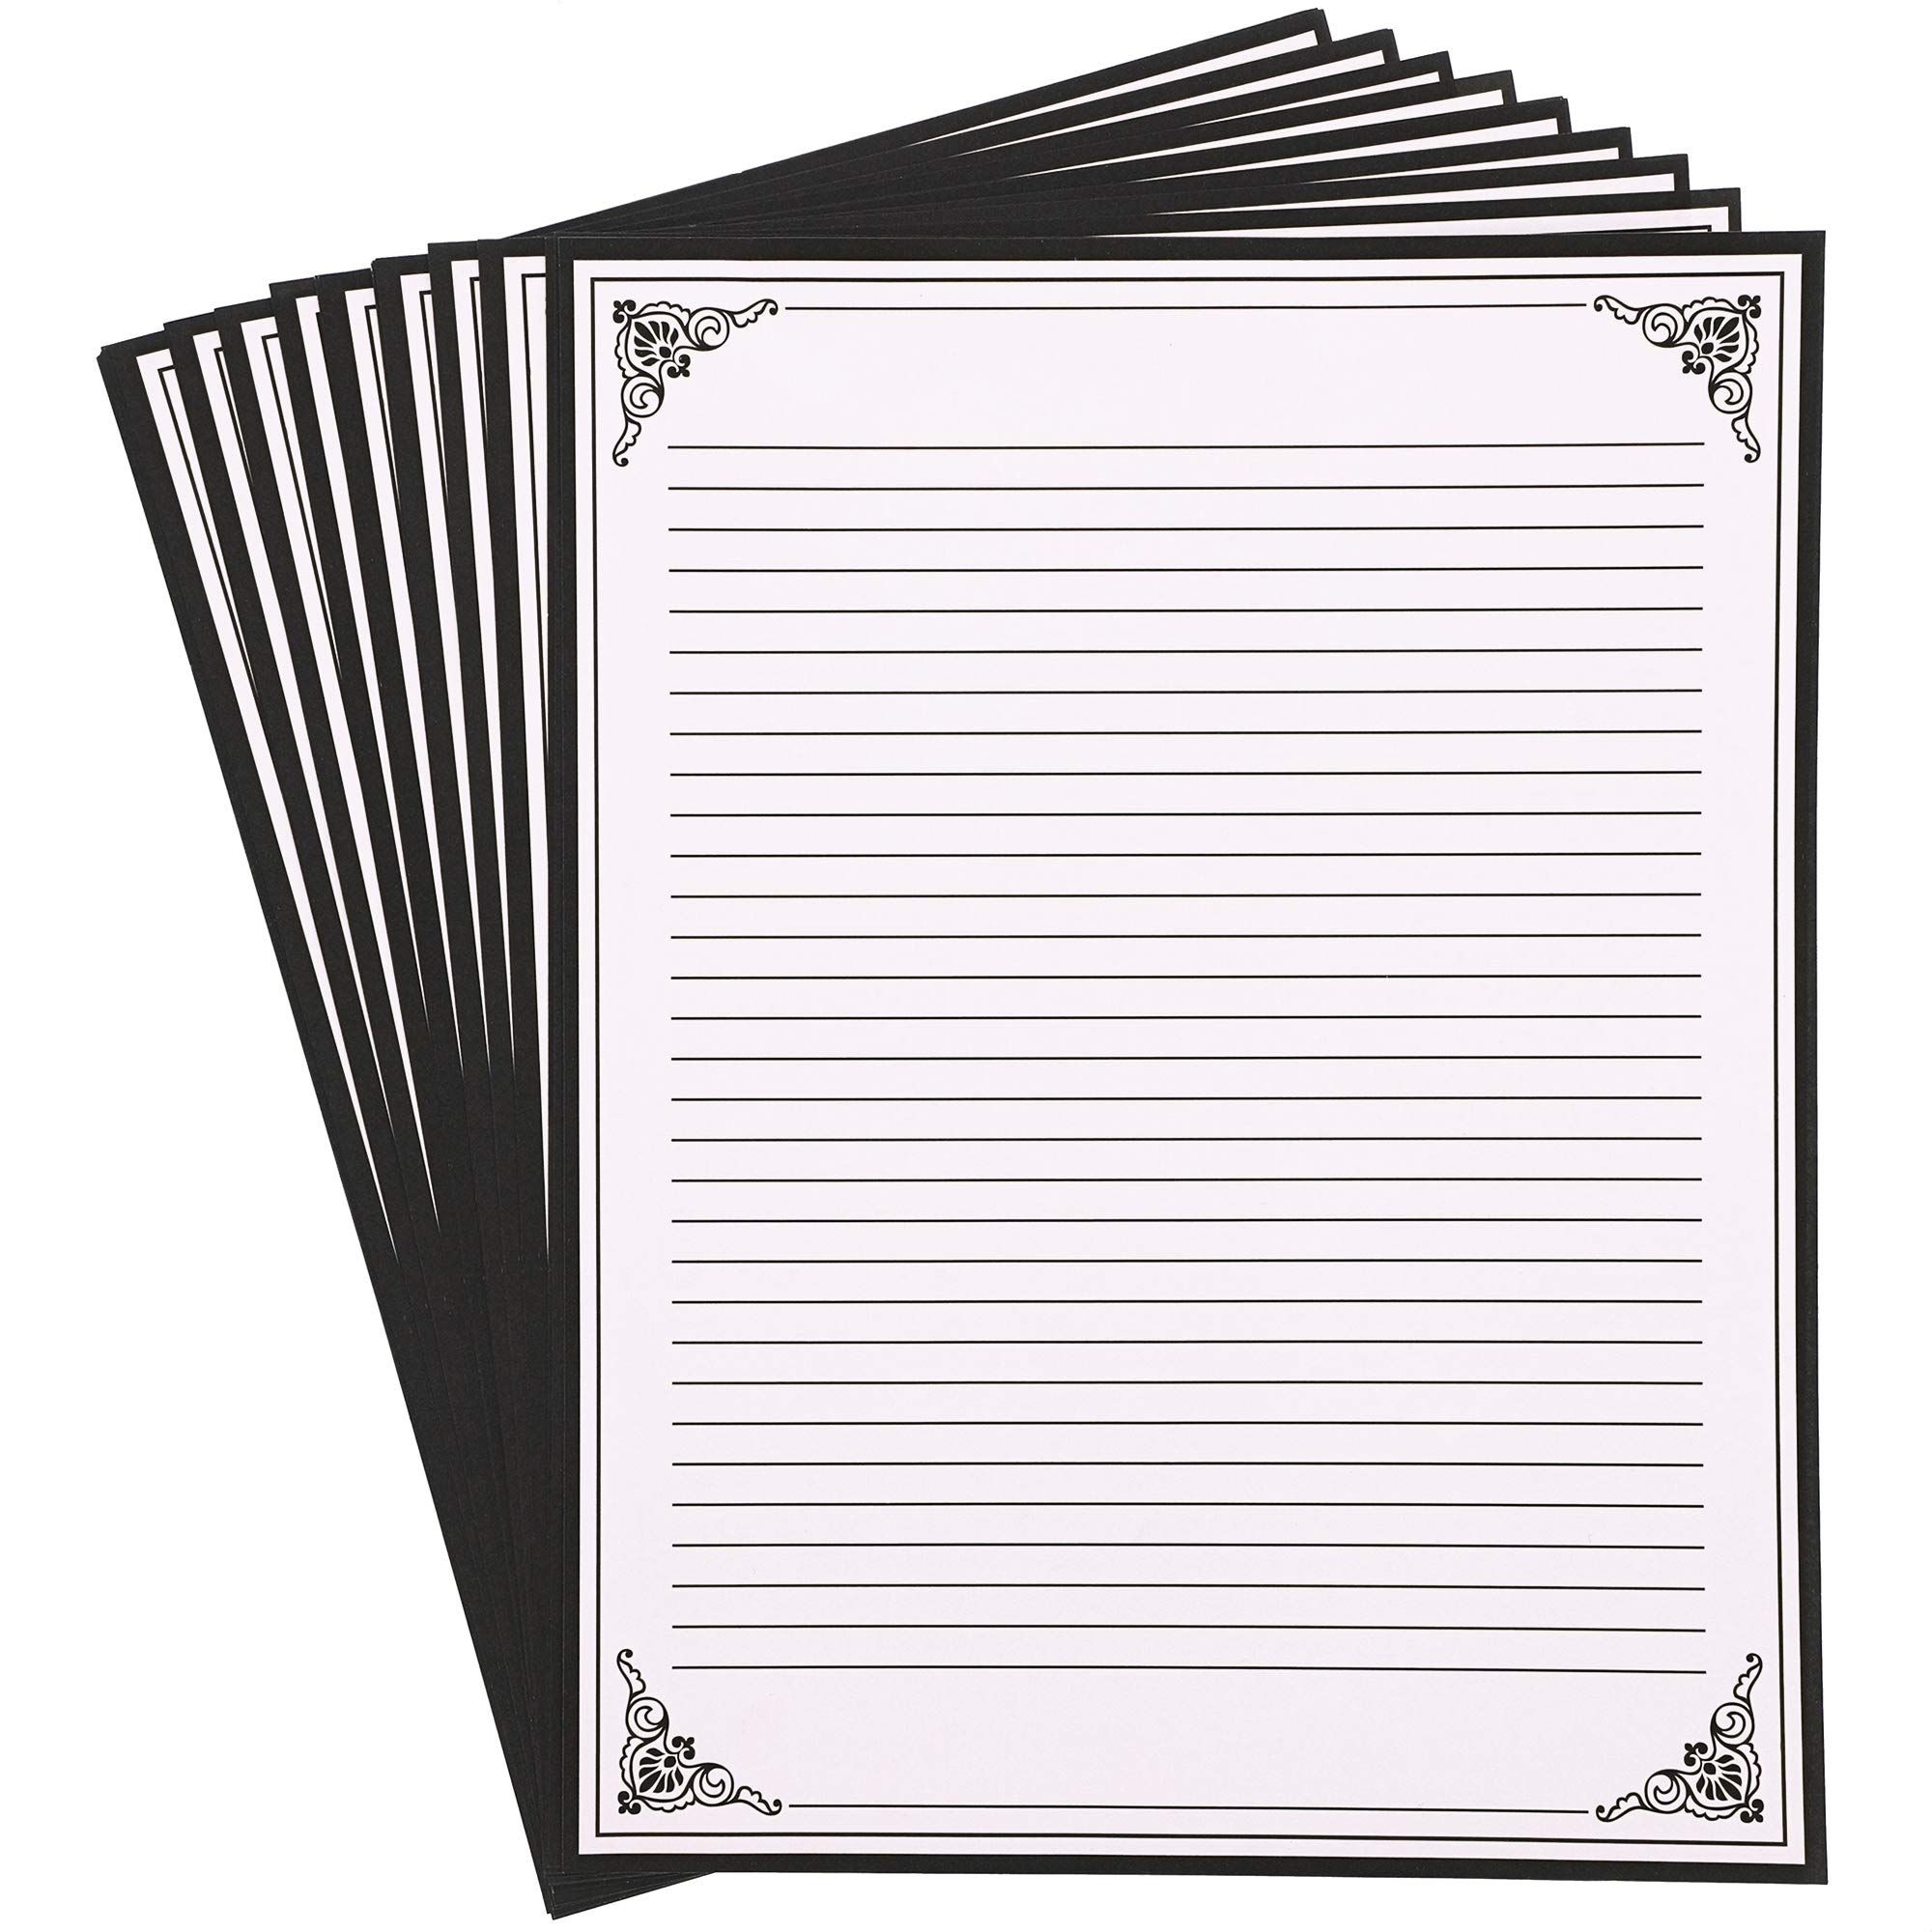 Juvale Vintage Stationery Paper, Lined (96 Sheets) 8.5 x 11 Inches, Cream by Juvale